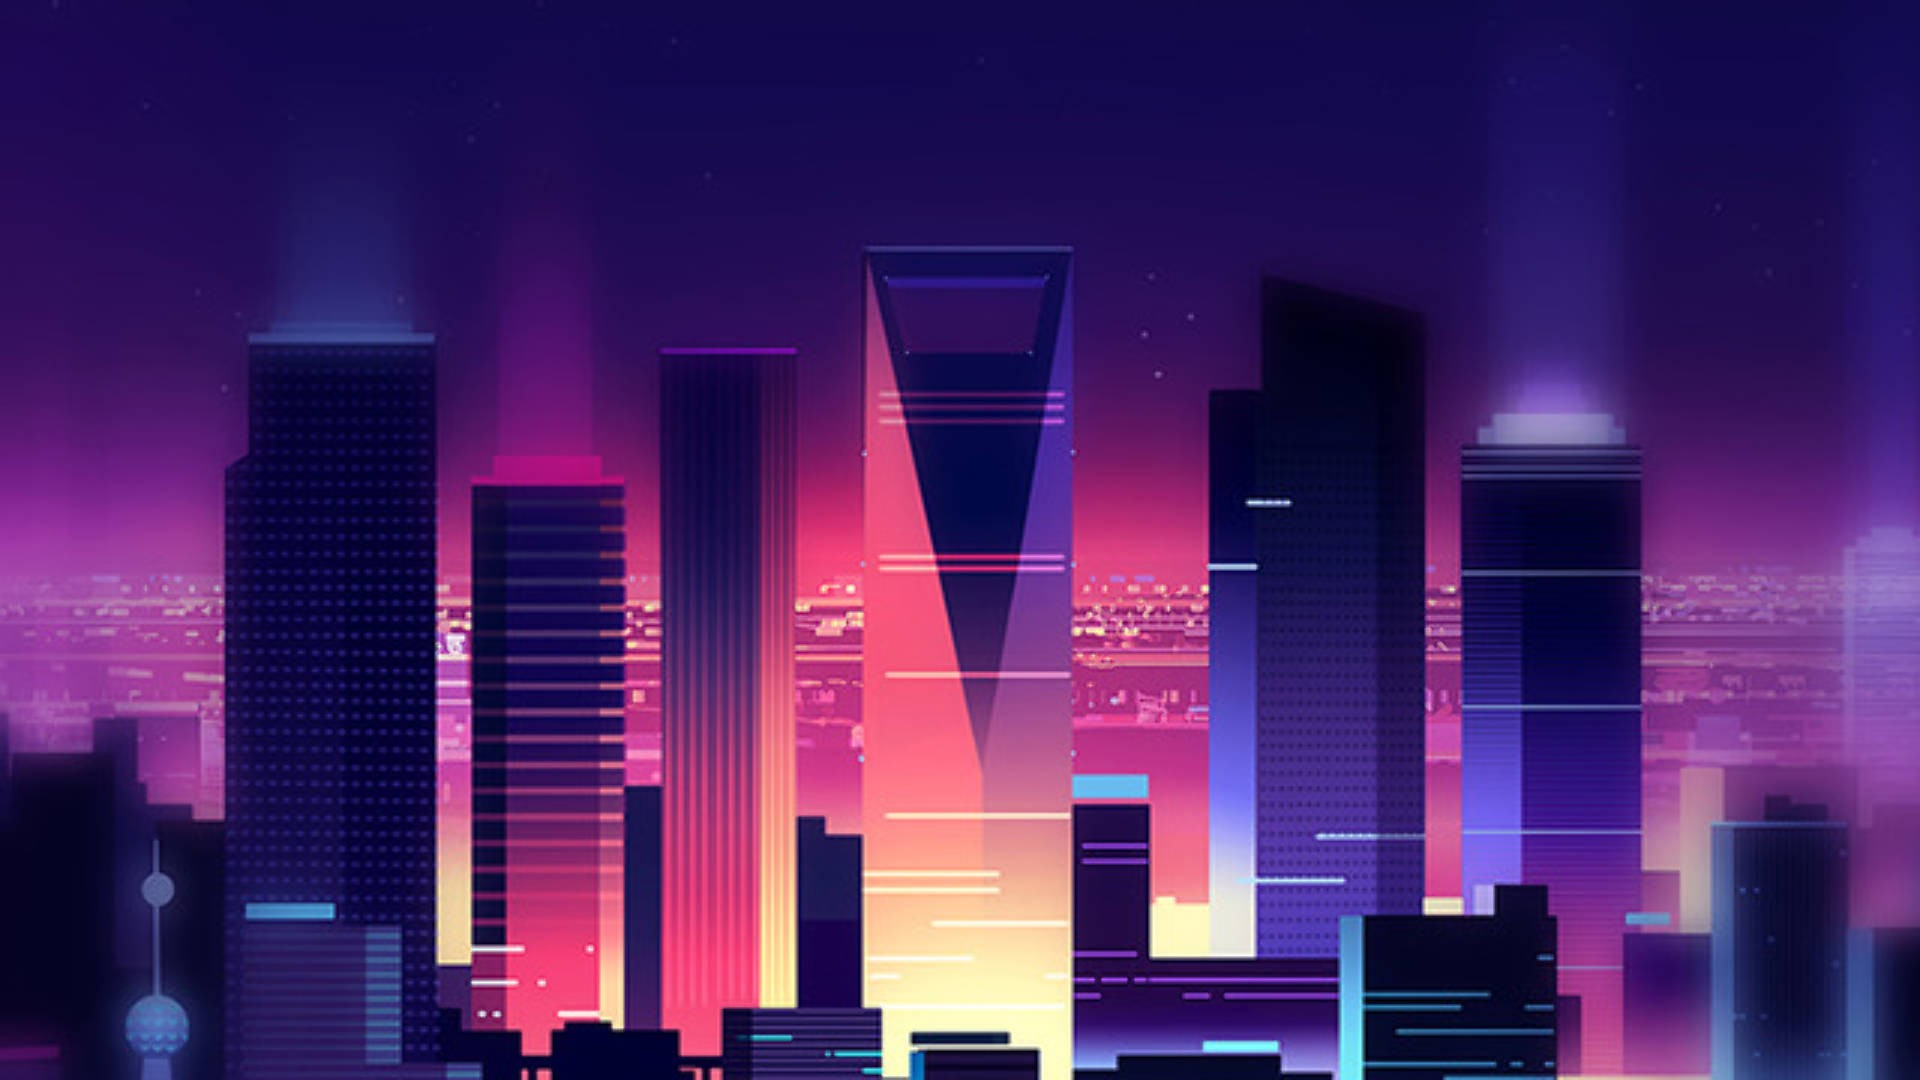 Synthwave wallpaper ·① Download free High Resolution